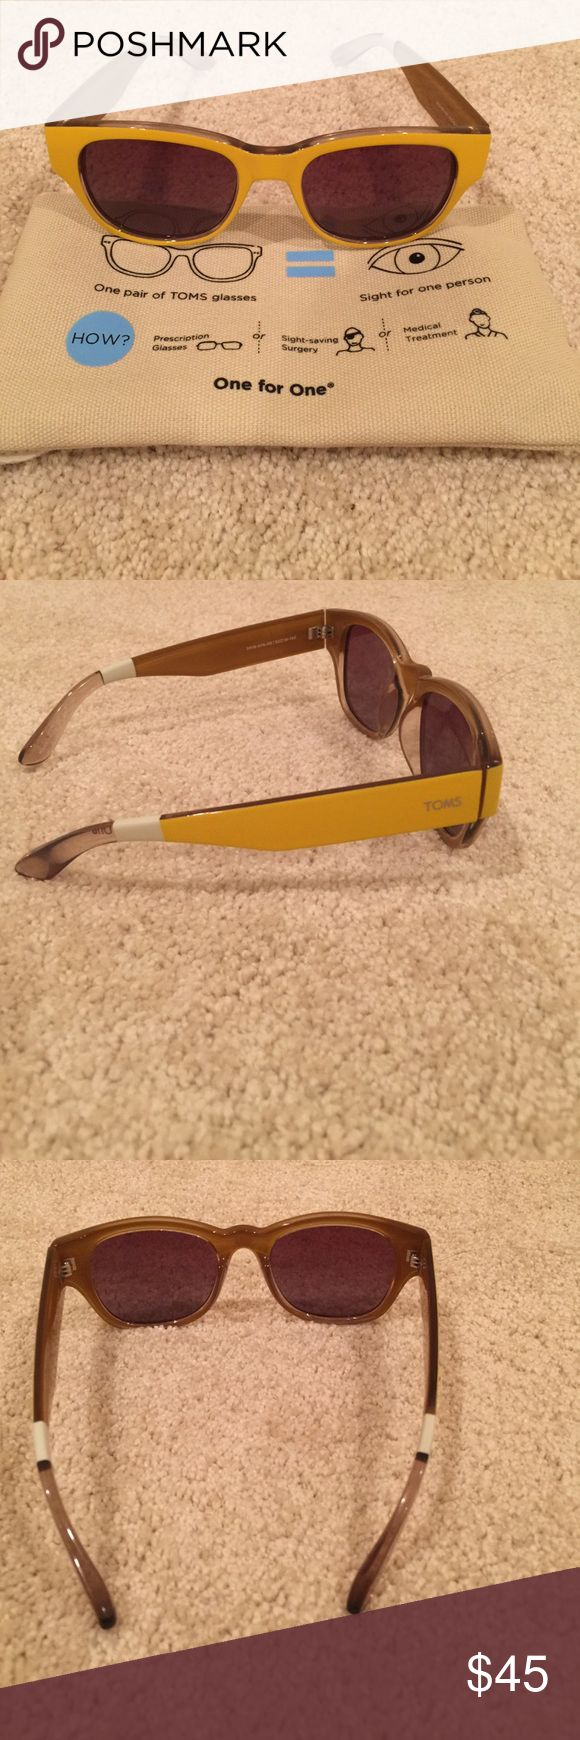 TOMS Taxi yellow & champ brown Gigi Brand new, chic color, retro style. Comes with pouch. Toms Accessories Sunglasses